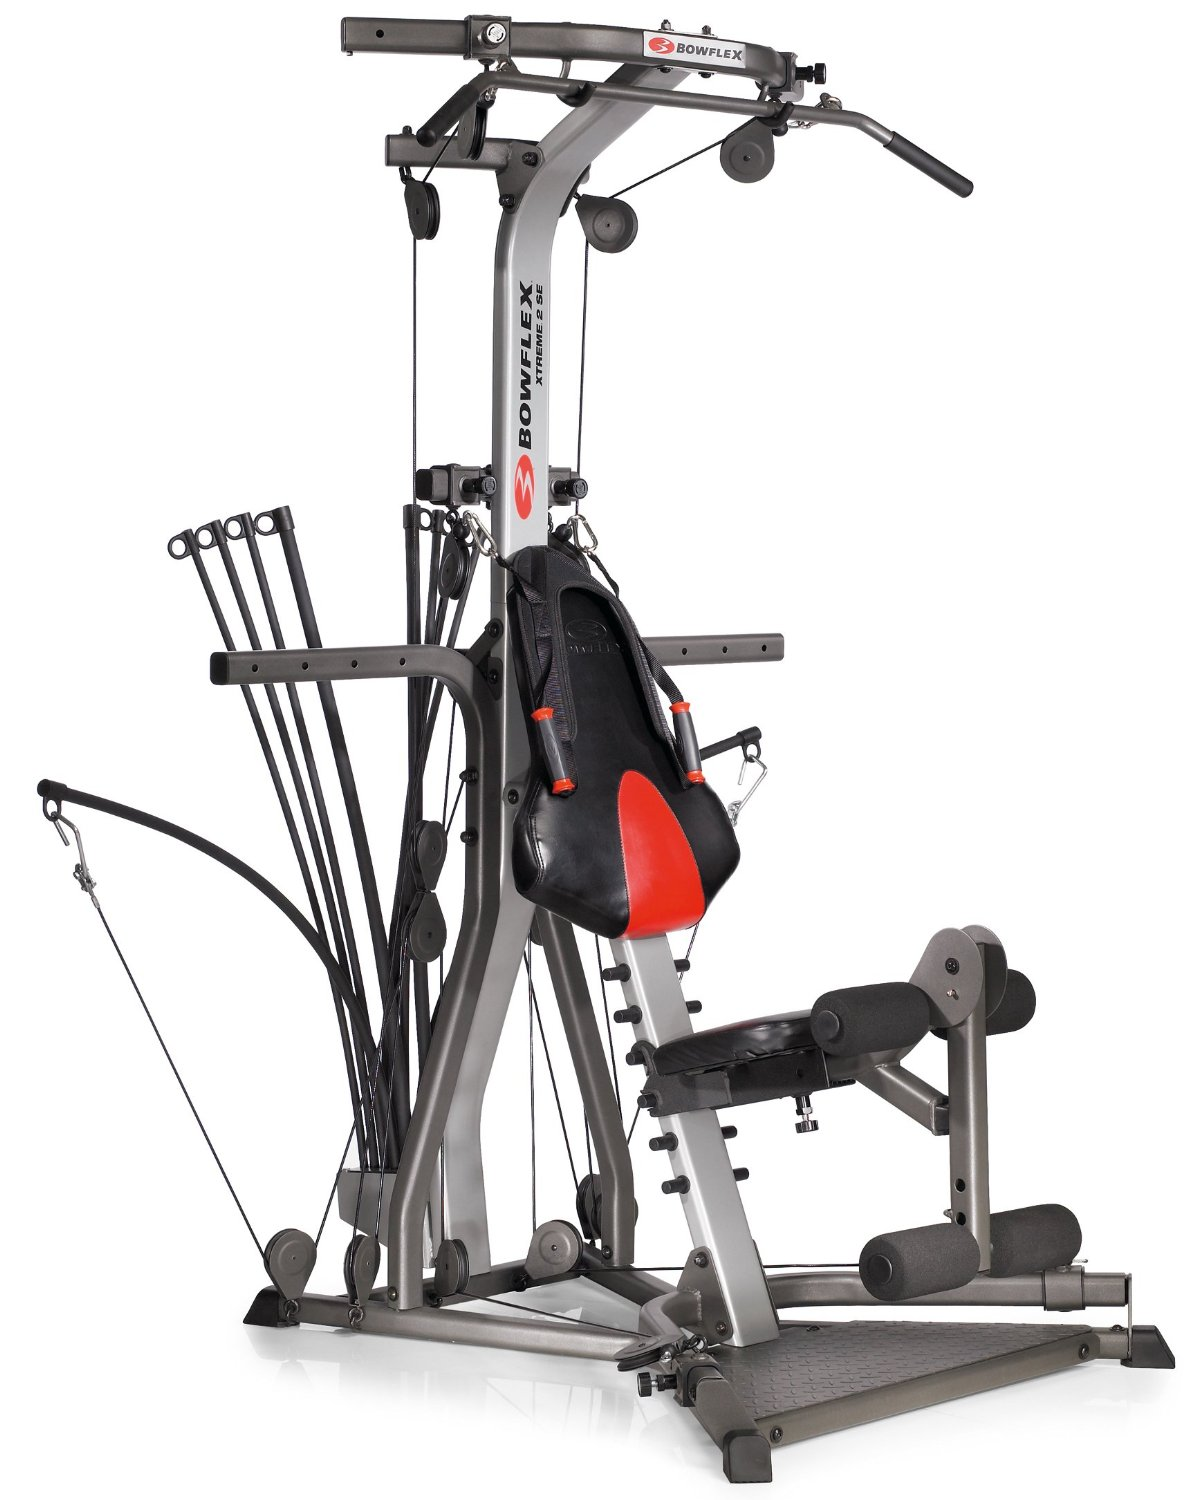 Bowflex Xtreme 2 Se Home Gym Review Wxfitness Com